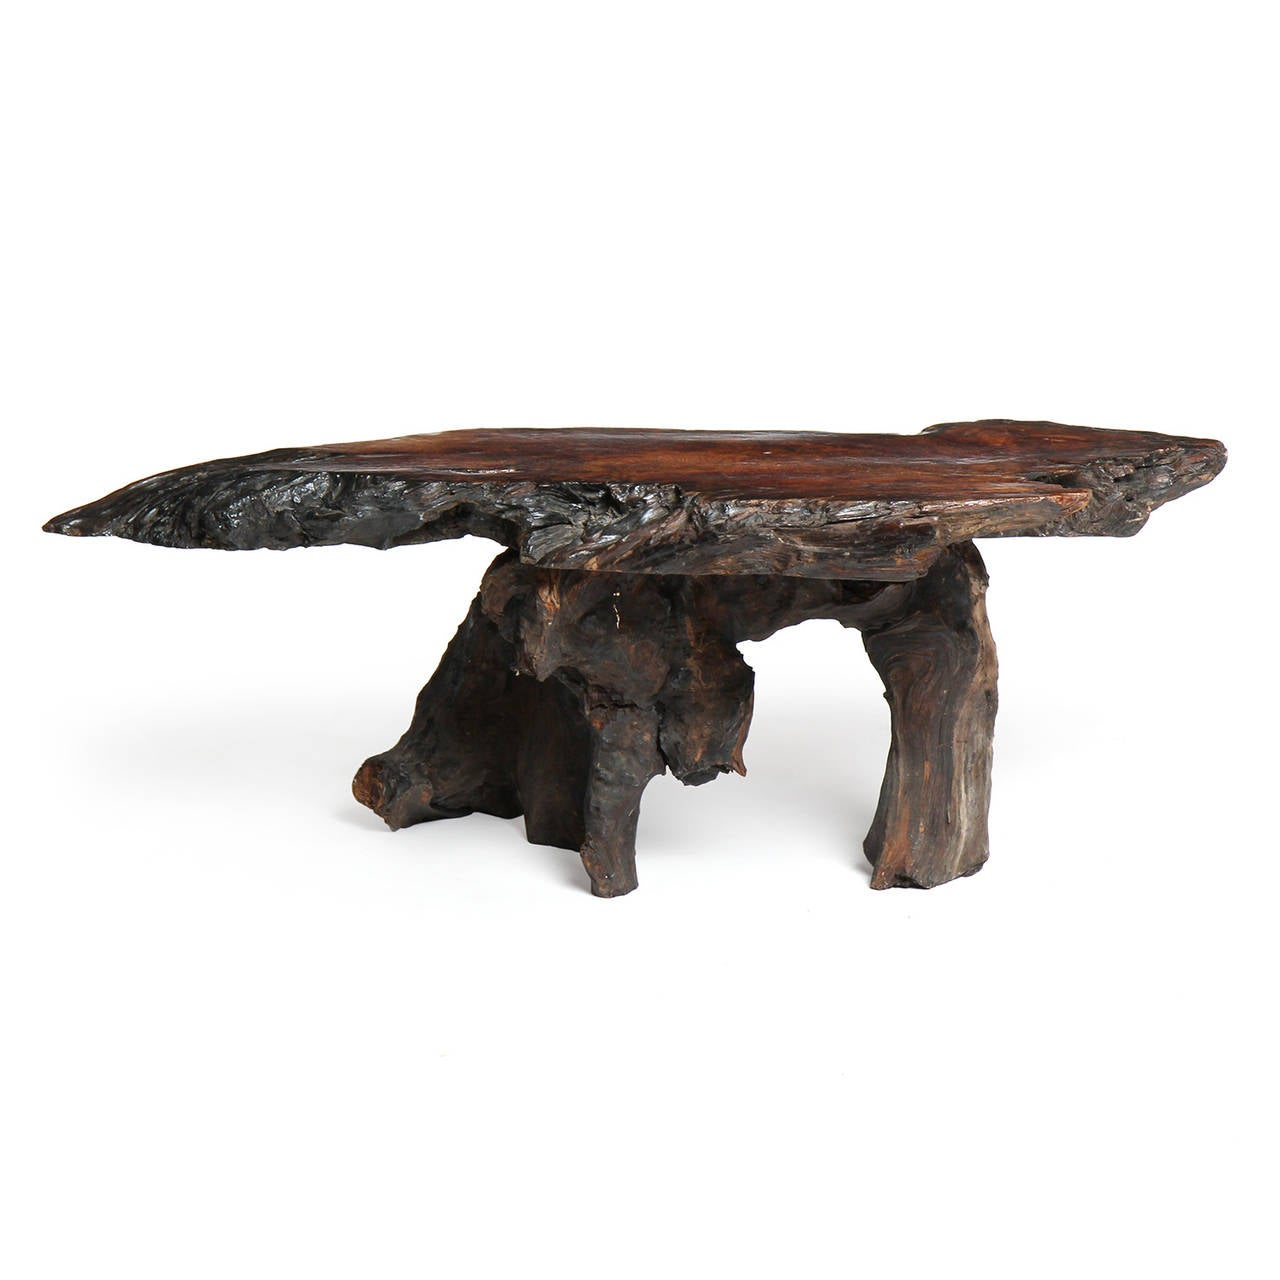 Organic Burl Redwood Low Table For Sale At 1stdibs